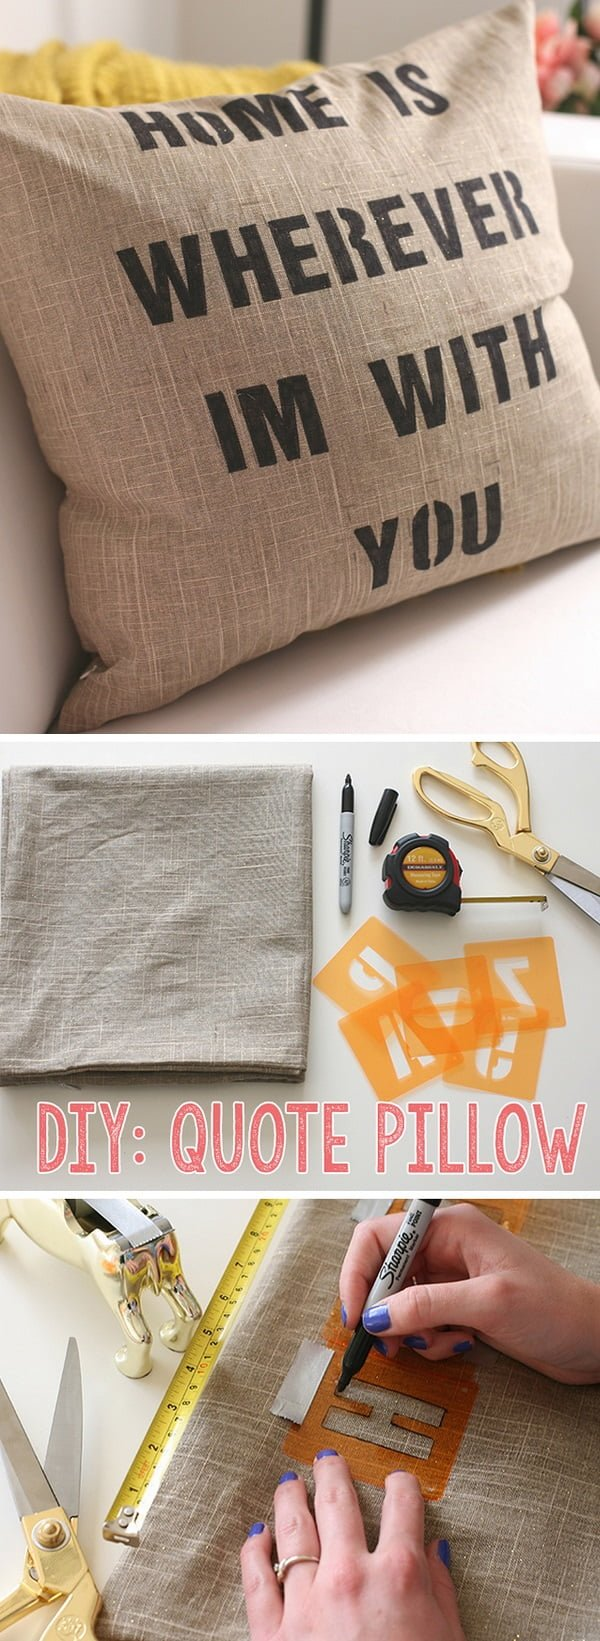 Check out this easy idea on how to make a #DIY quote pillow cover #homedecor on a #budget #crafts #project